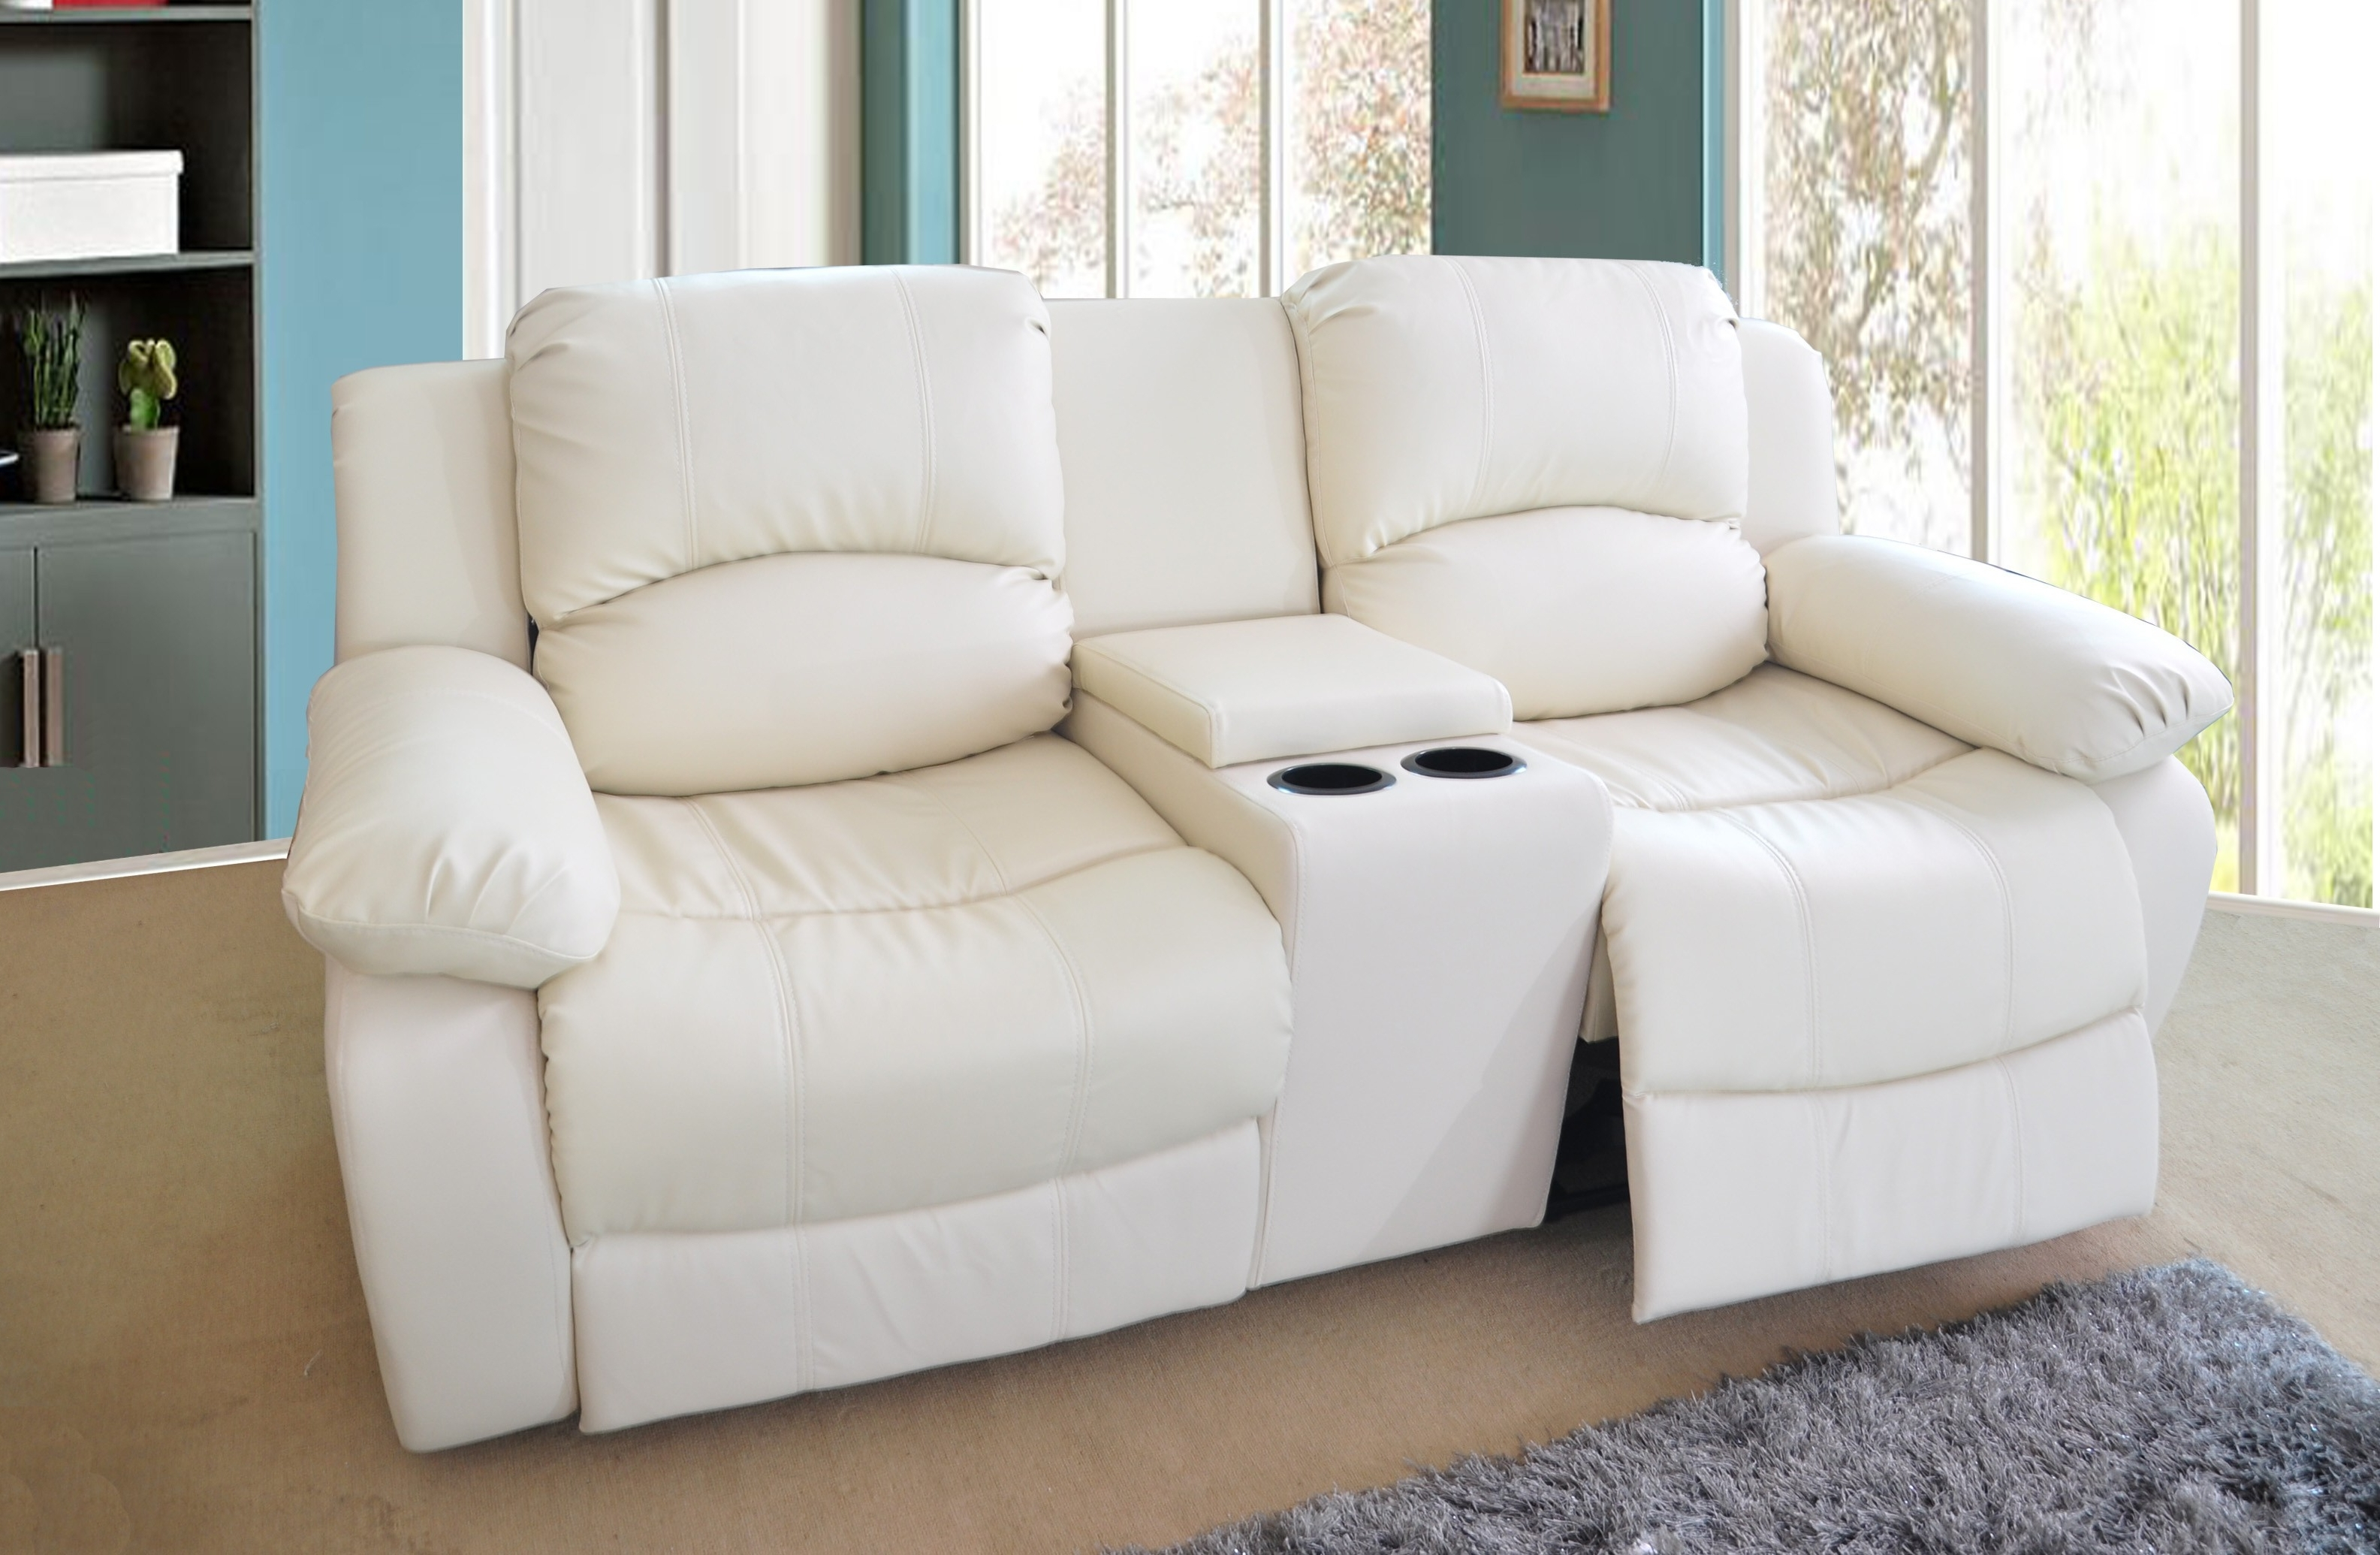 Fashionable 2 Seat Recliner Sofas With Regard To Recliners Chairs & Sofa : Fresh 56 Flawless Fabric Sofa Recliner (View 11 of 15)